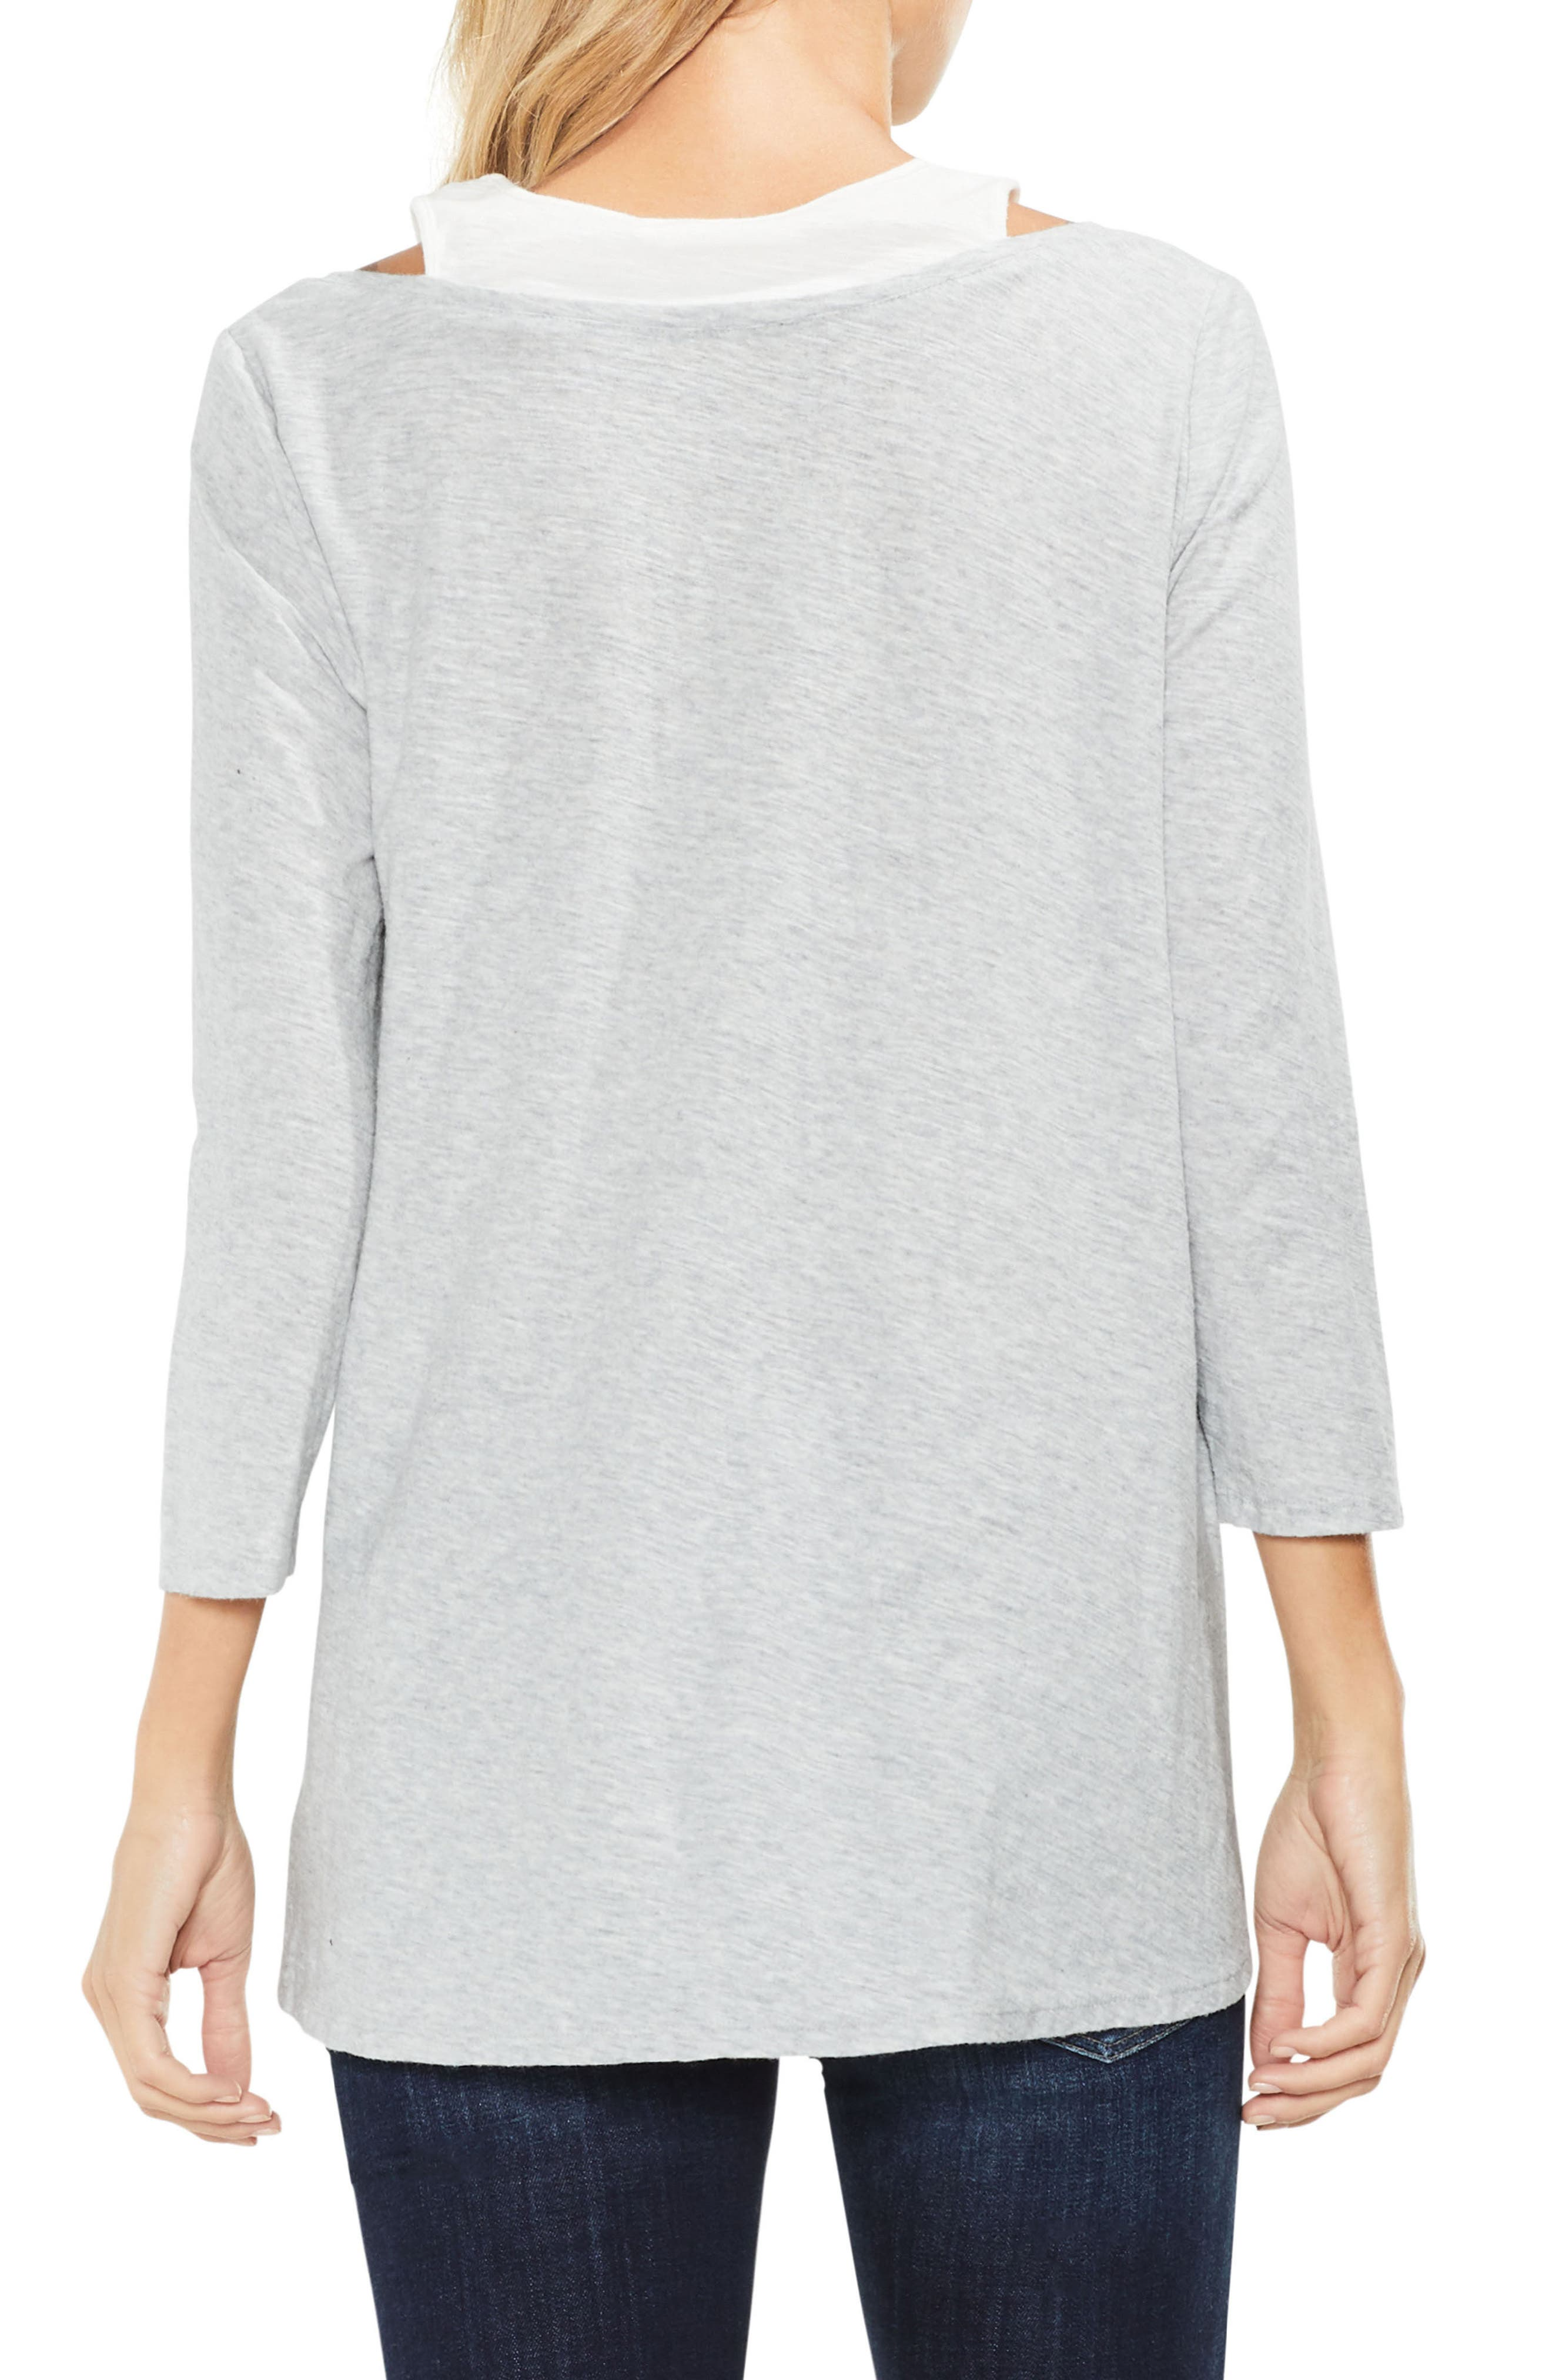 Two by Vince Camuto Layered Top,                             Alternate thumbnail 2, color,                             050